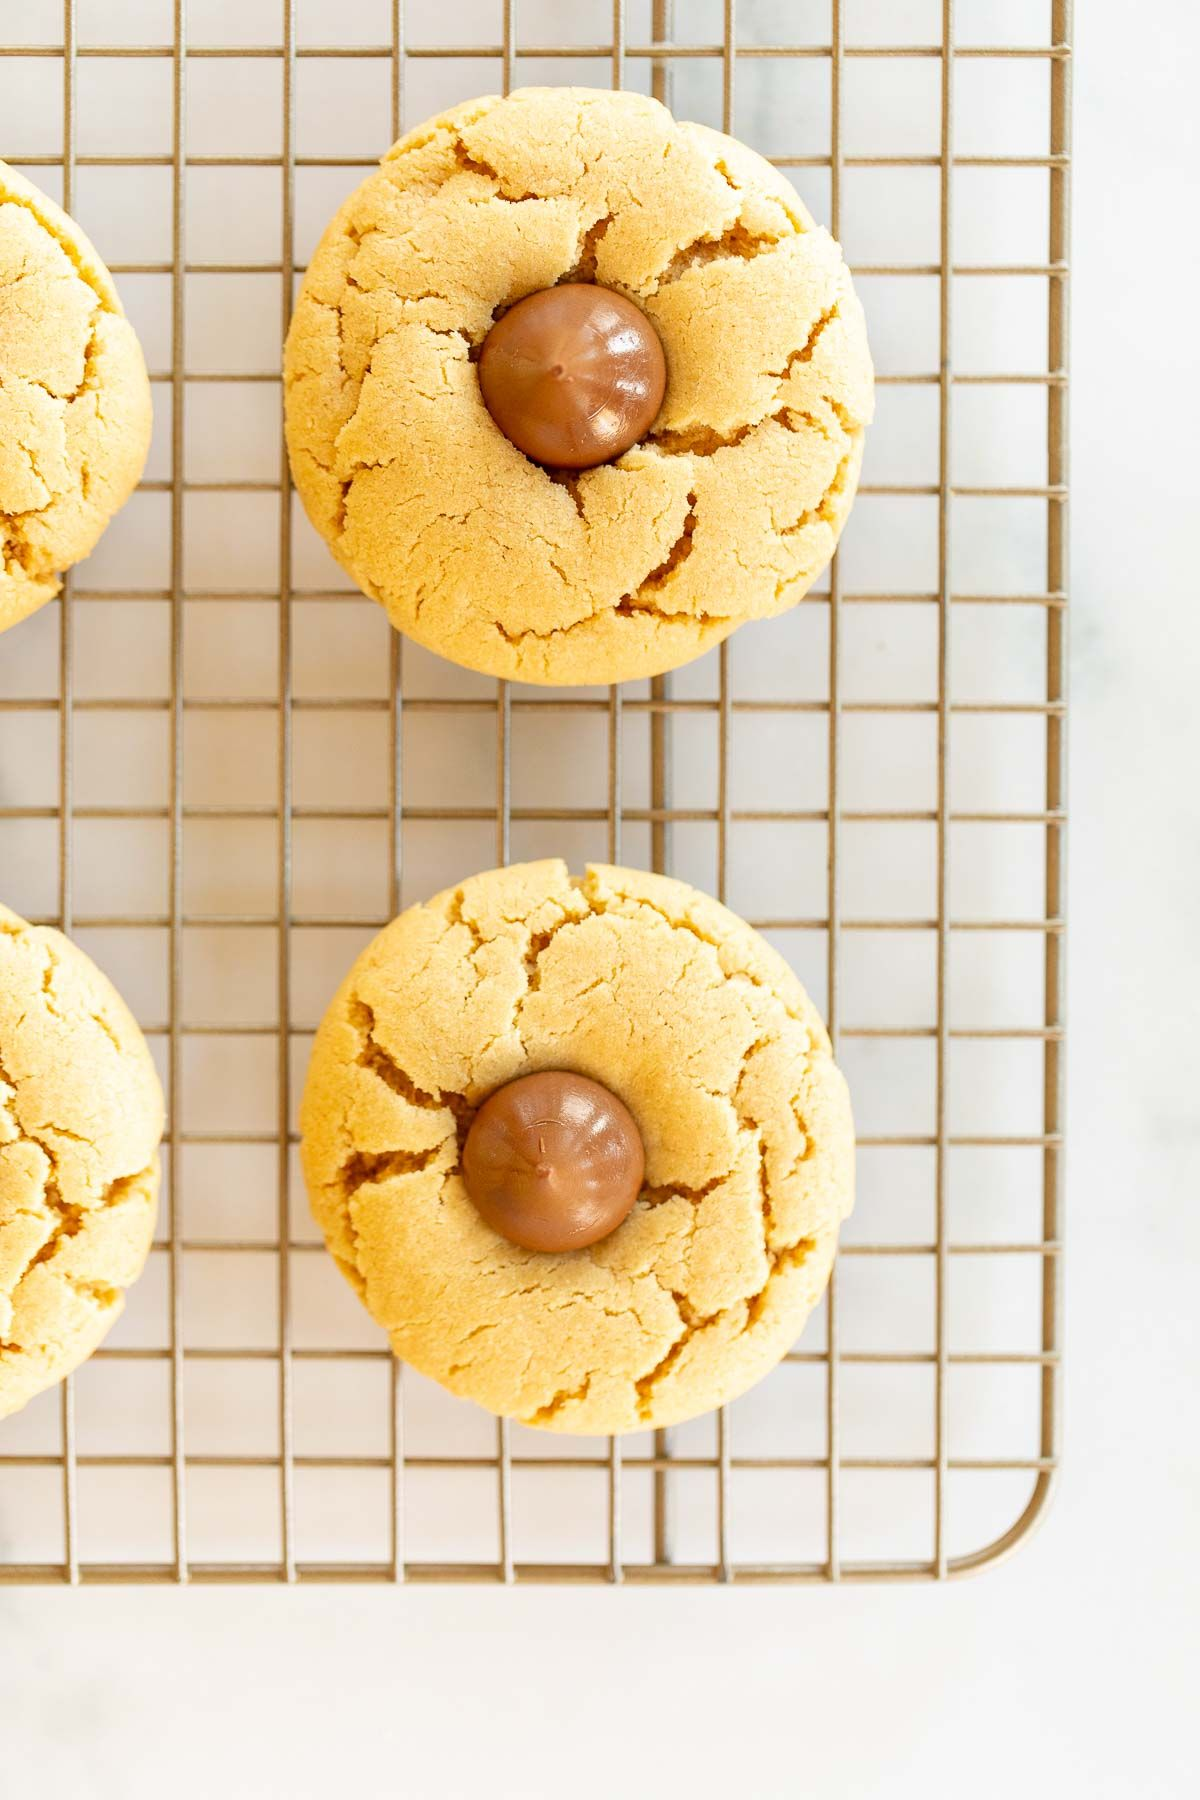 Freshly baked peanut butter blossom cookies on a metal cooling rack.